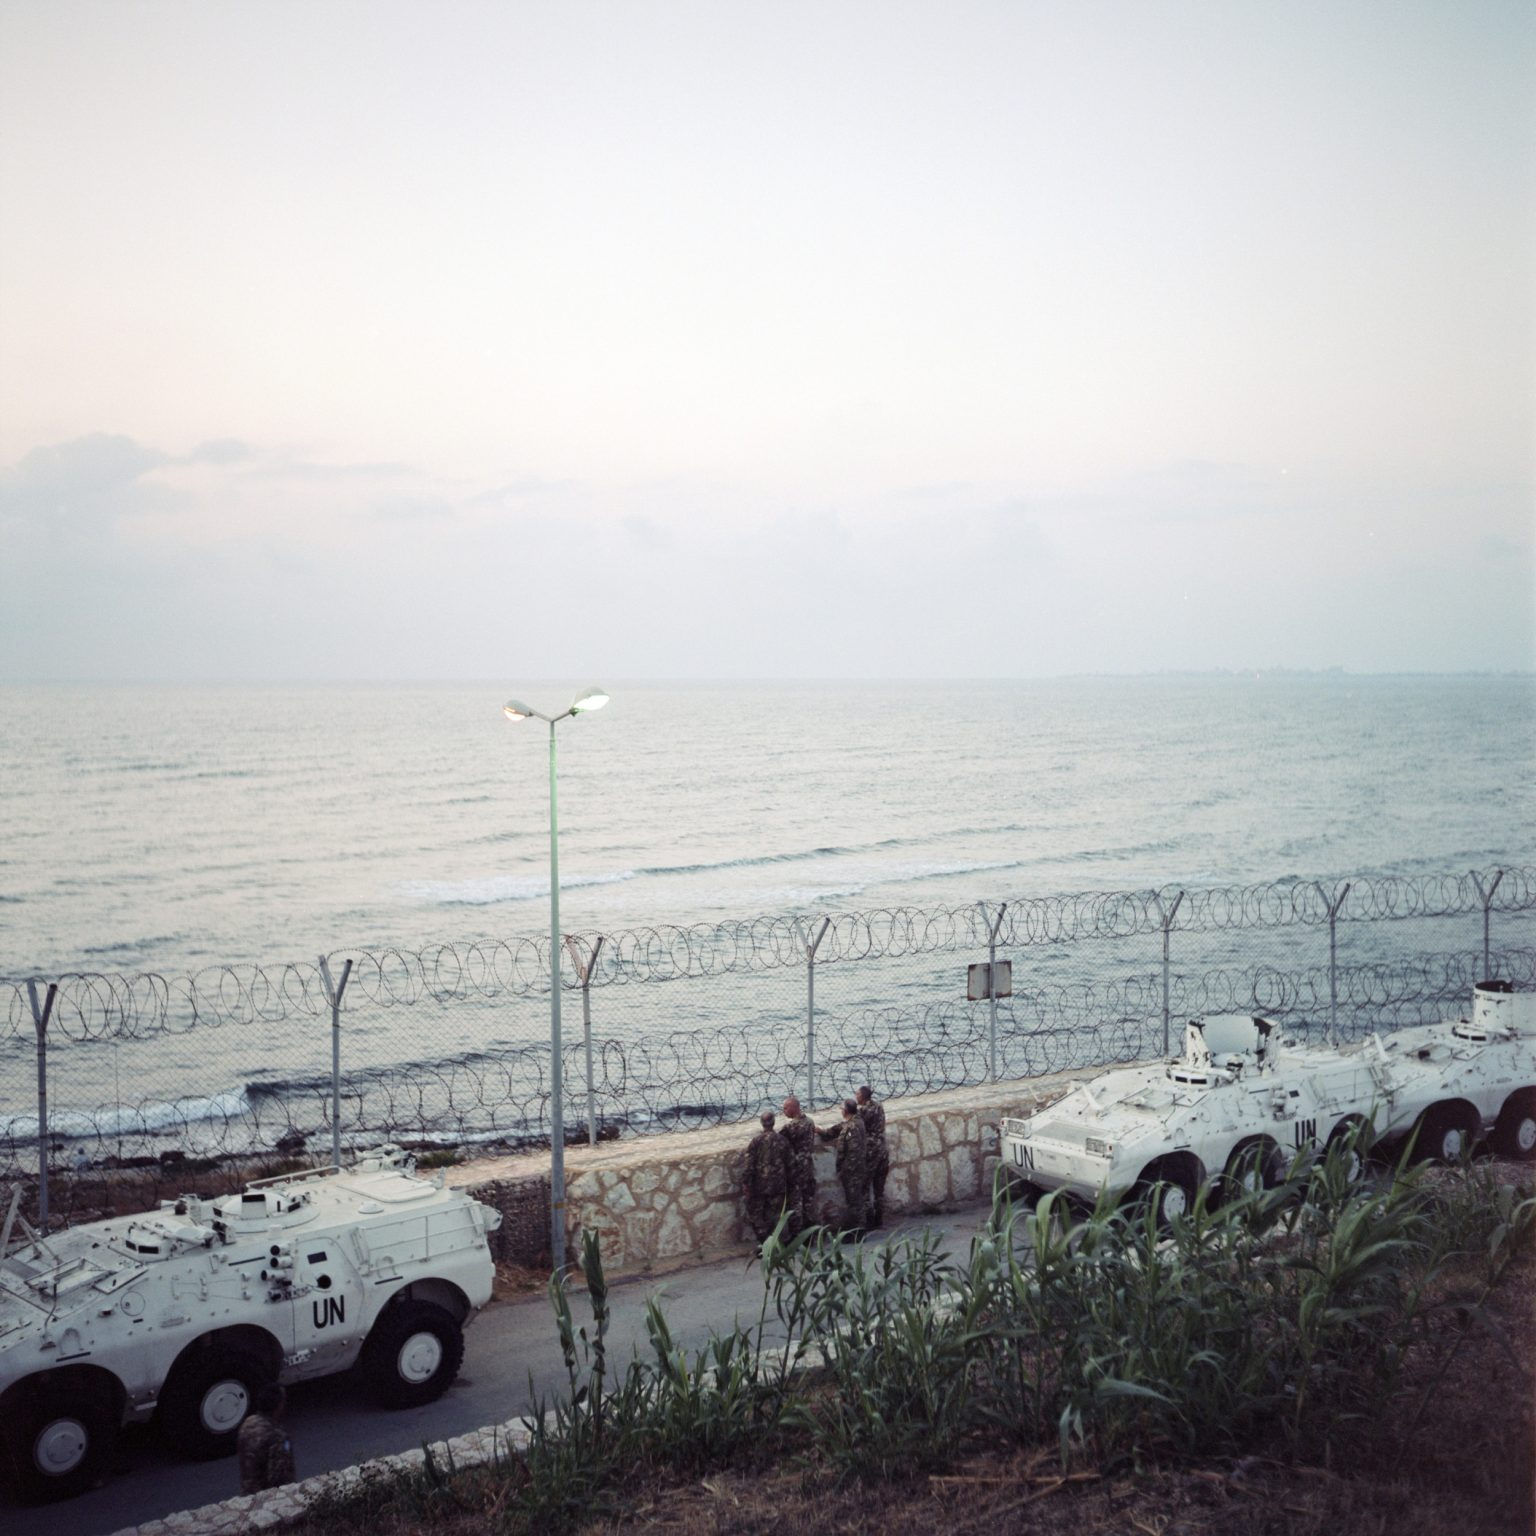 Al Mansouri, Lebanon. UNIFIL Italbatt compound, seat of Sector West Mobile Reserve. Soldiers look at the sea just outside the fence surrounding the base.